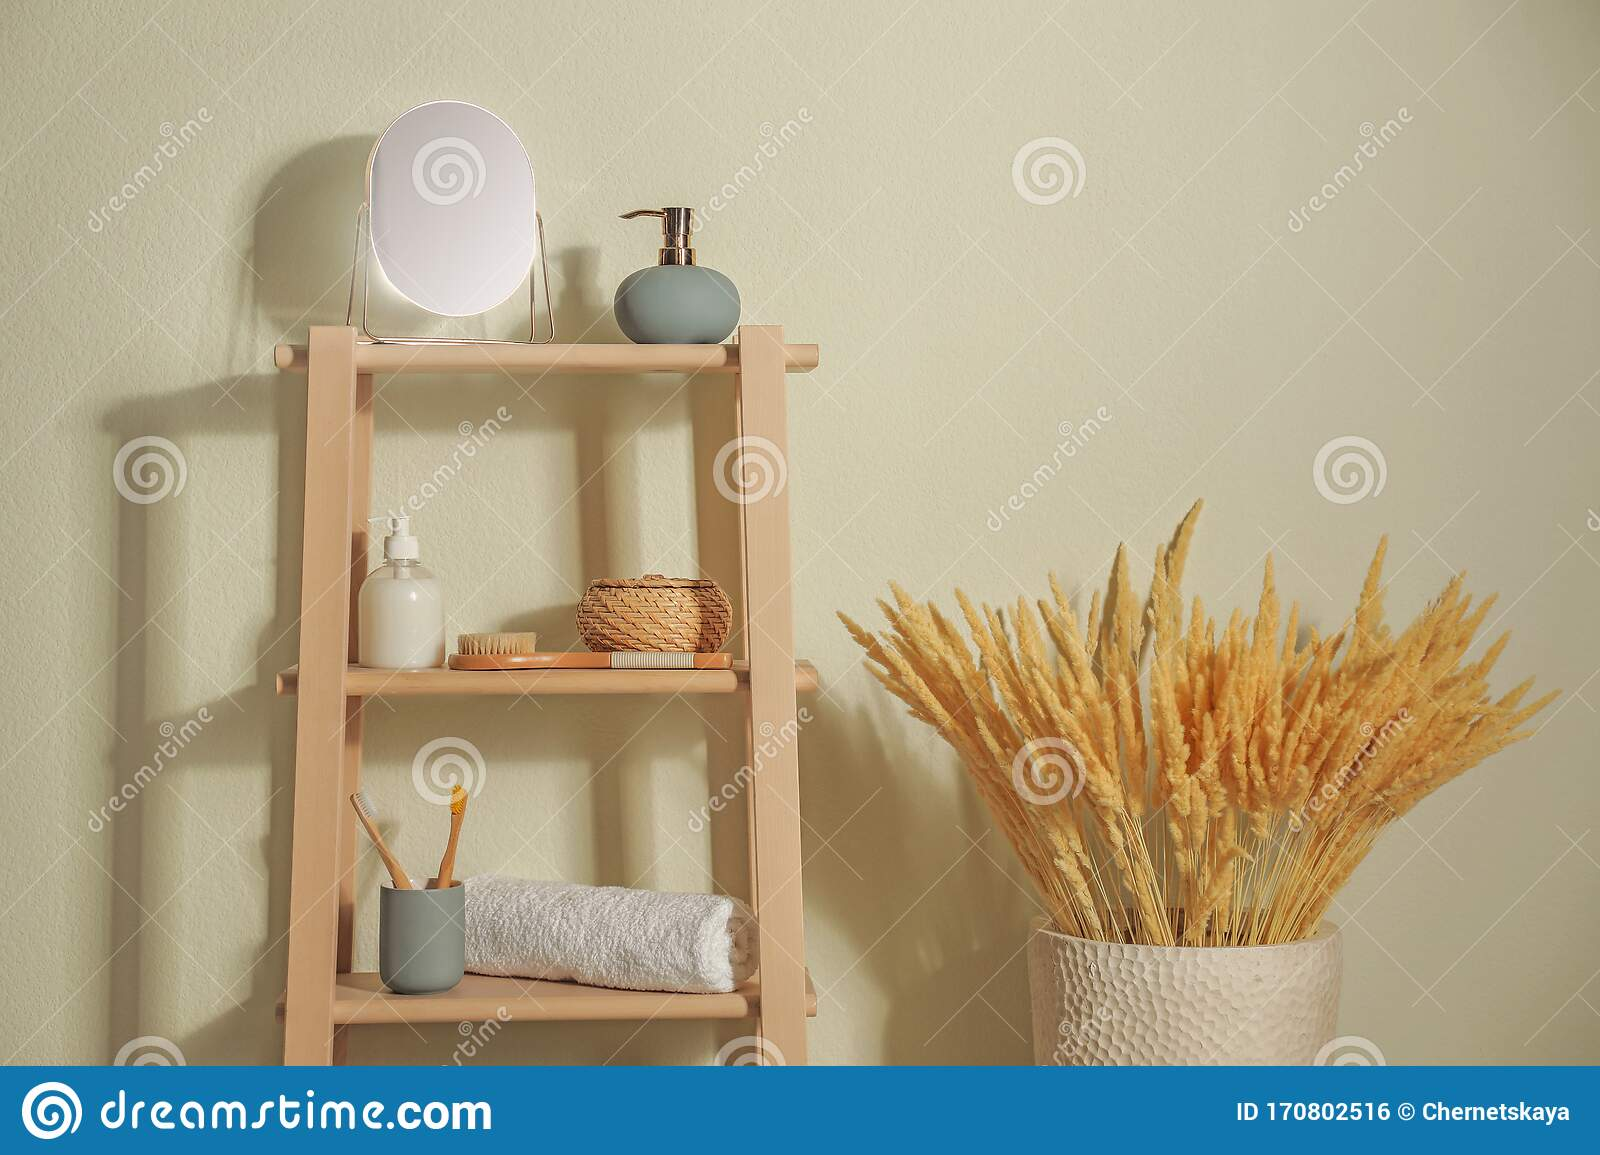 Wooden Shelving Unit With Toiletries Near Light Wall Indoors Bathroom Interior Element Stock Photo Image Of Bathroom Furniture 170802516